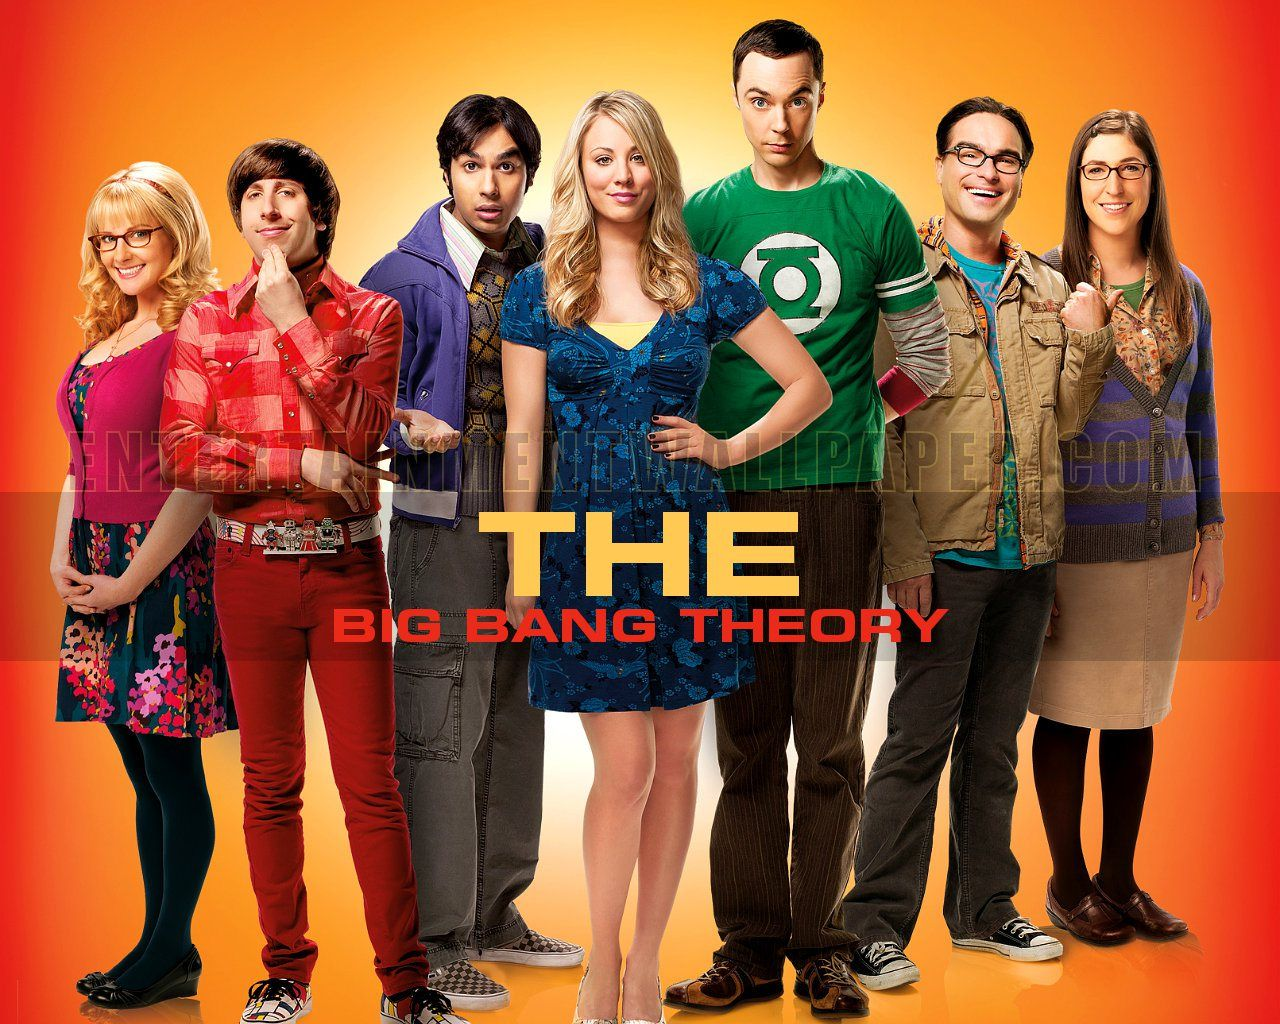 The Big Bang Theory Season 7 720p HDTV x264-DIMENSION